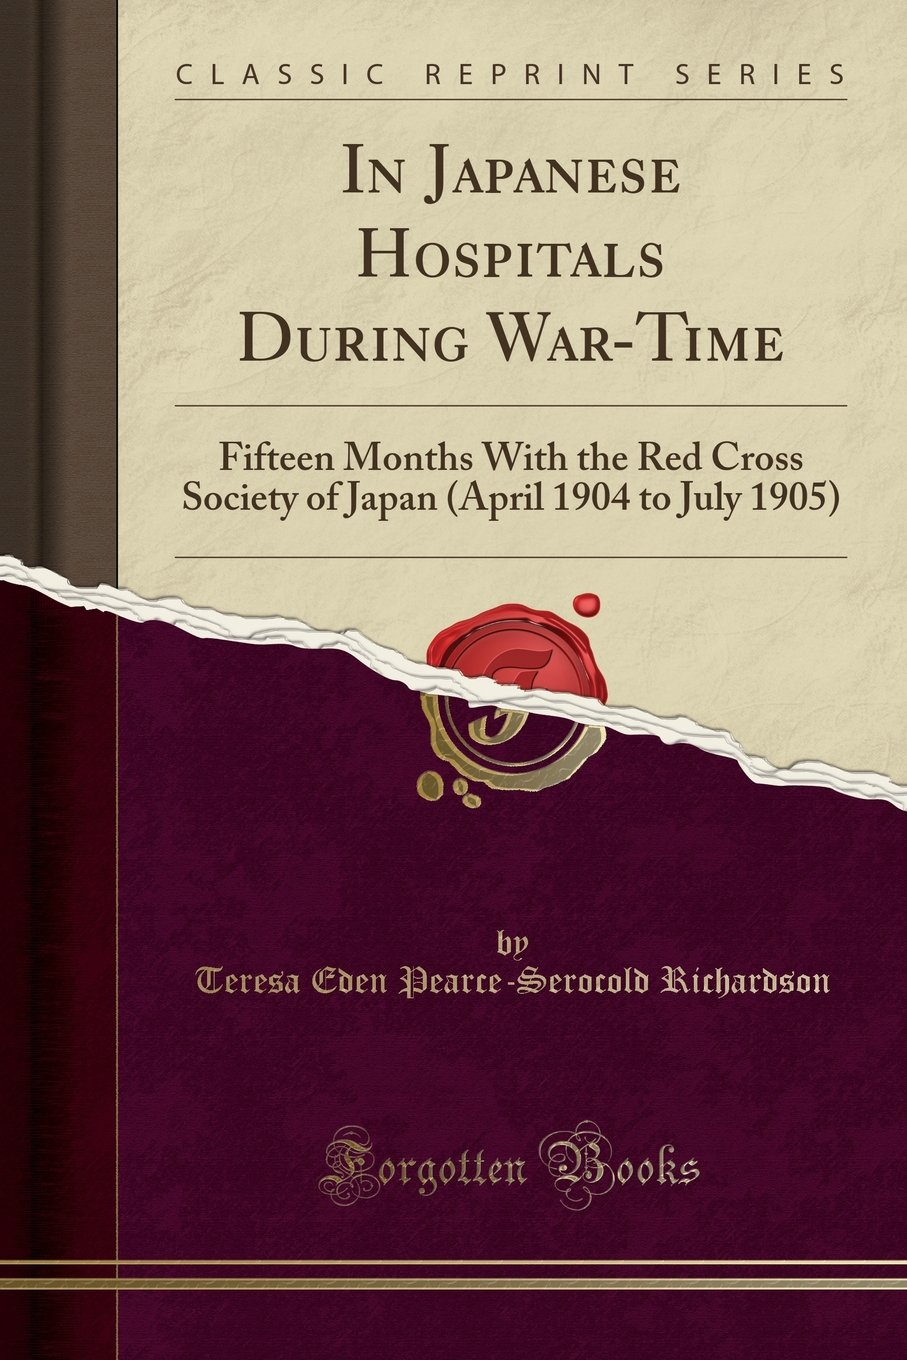 In Japanese Hospitals During War-Time: Fifteen Months With the Red Cross Society of Japan (April 1904 to July 1905) (Classic Reprint) ebook